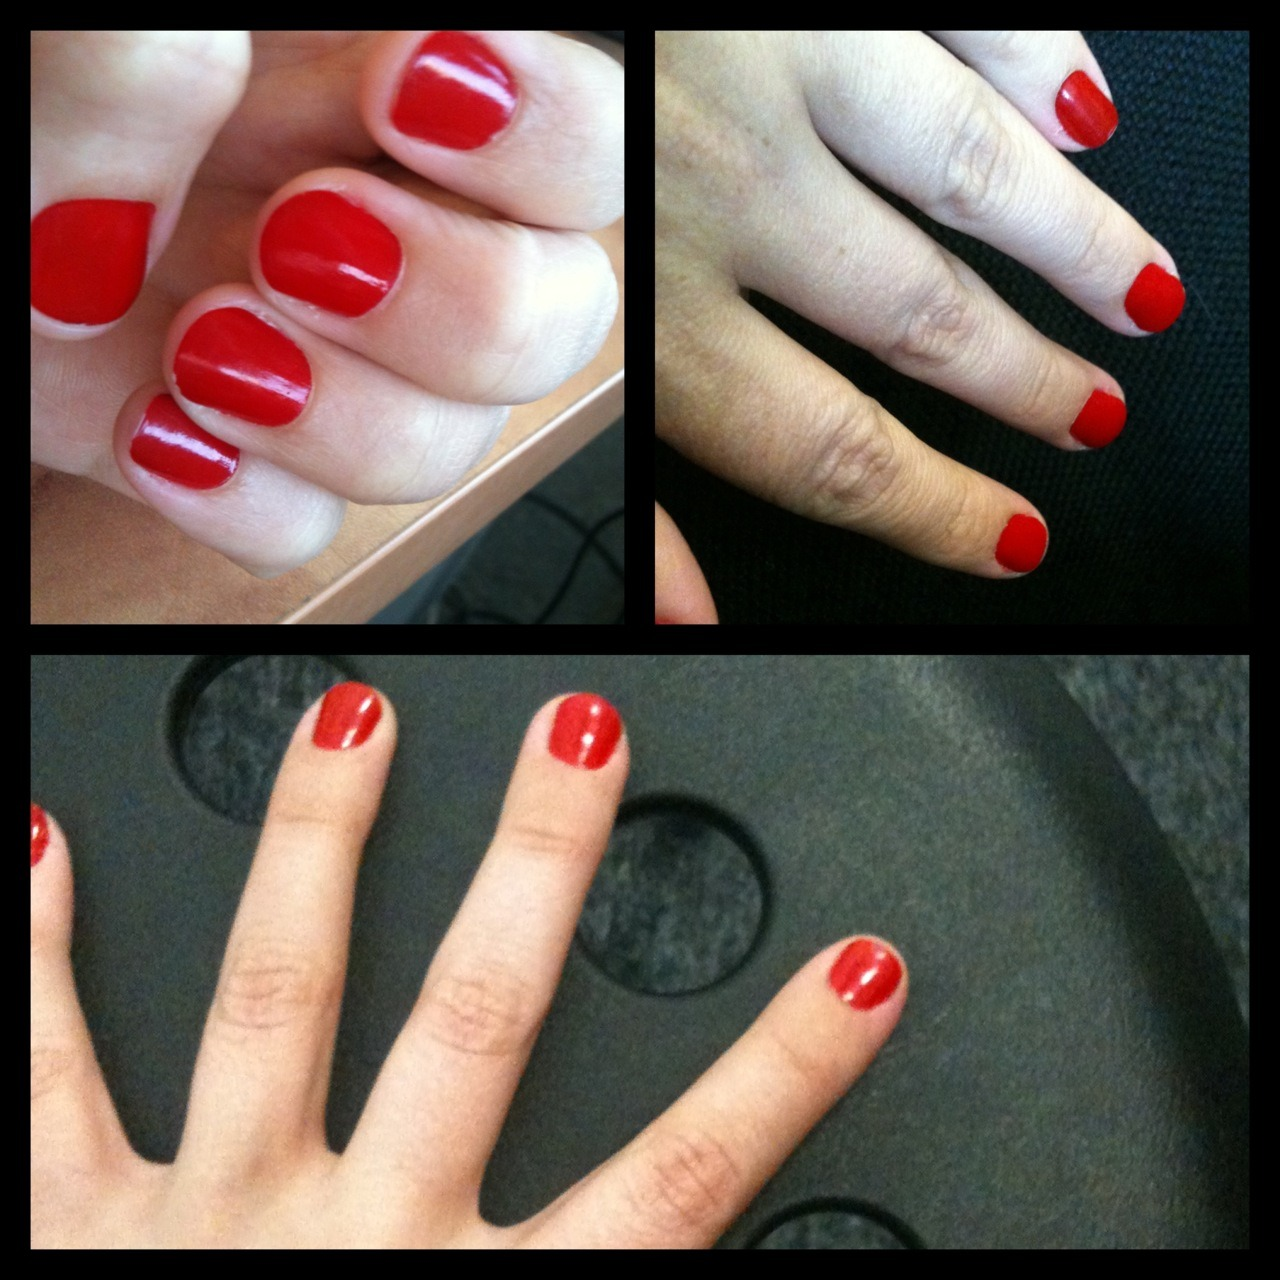 Found the perfect red *sigh*OPI - Big Apple Red.